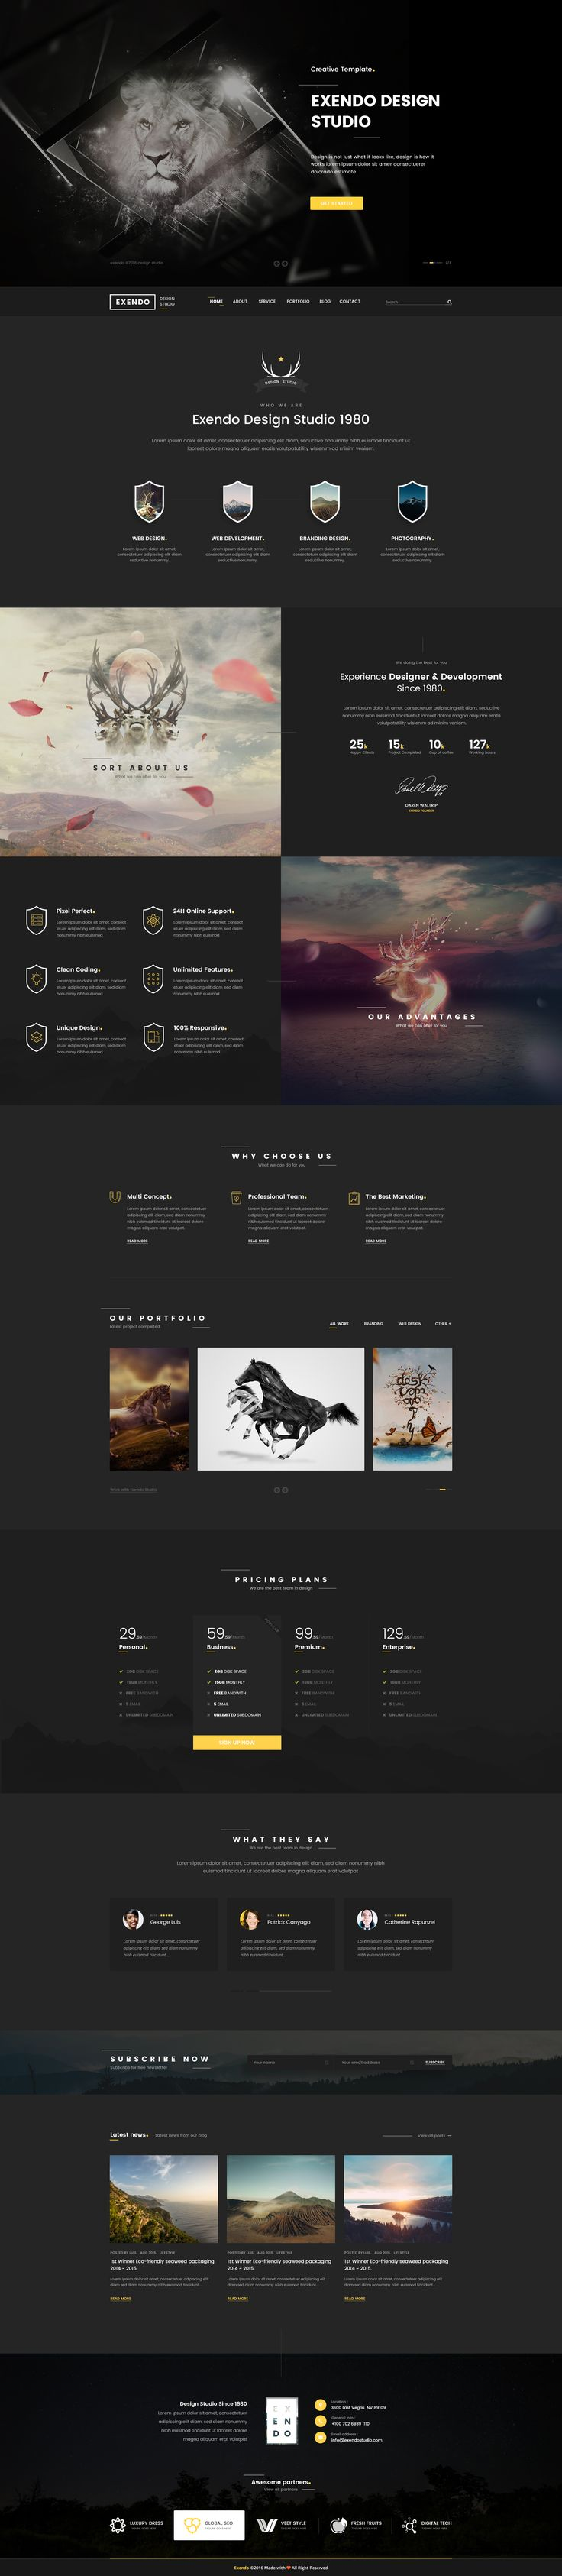 Exendo - Creative PSD Template #web design #template #clean • Download ➝ https://themeforest.net/item/exendo-creative-psd-template/16993581?ref=pxcr